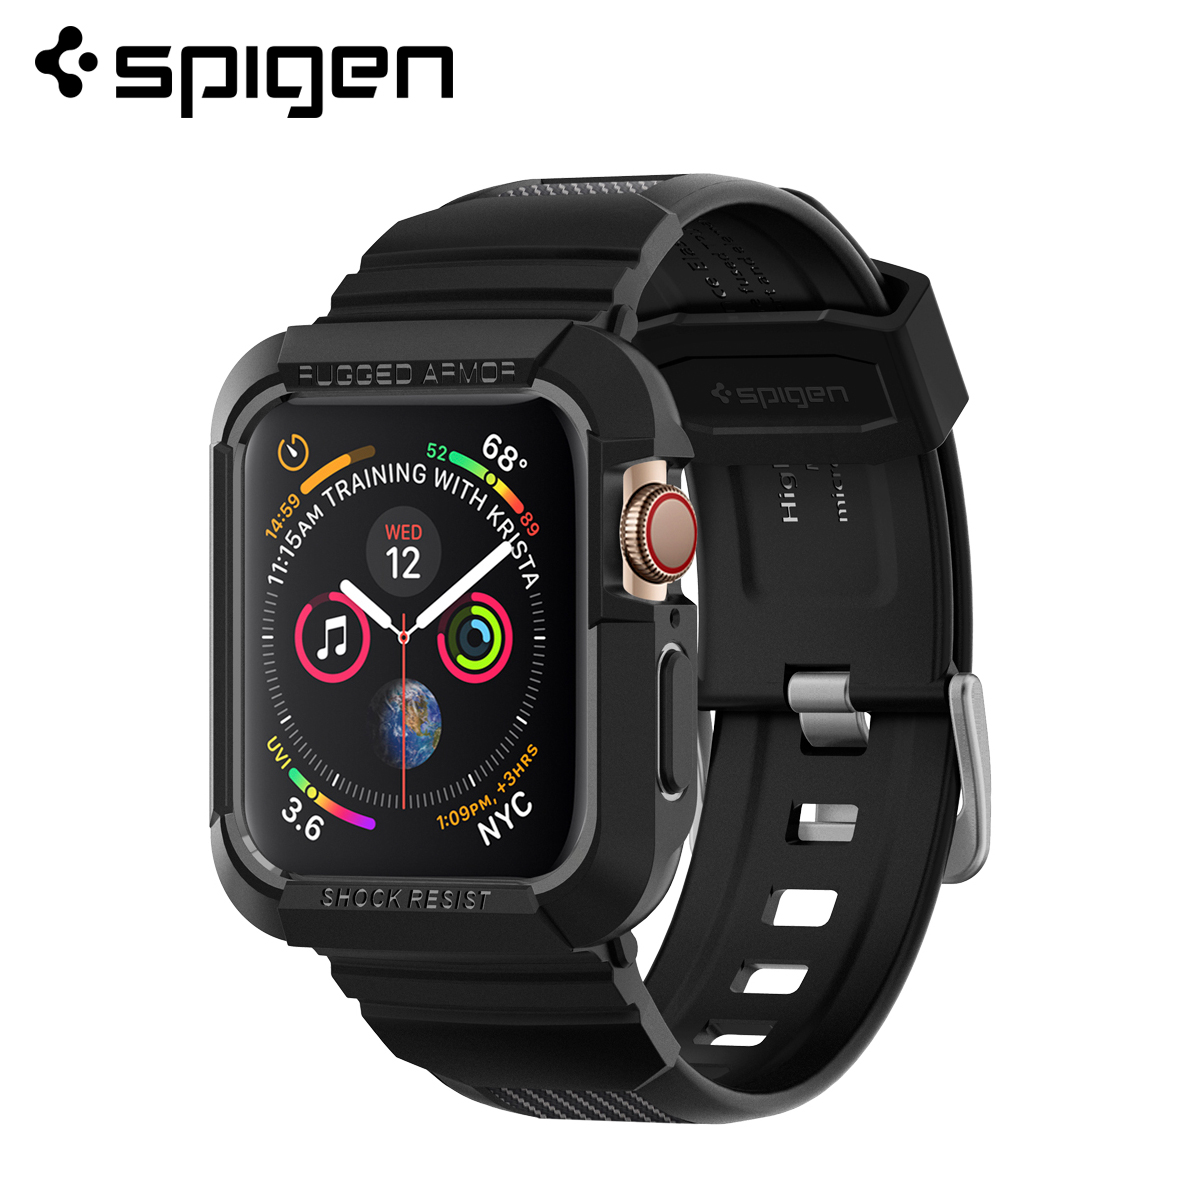 Spigen Rugged Armor Pro For Apple Watch Series 5 / 4  - Flexible Soft TPU Matte Black Protective Cases